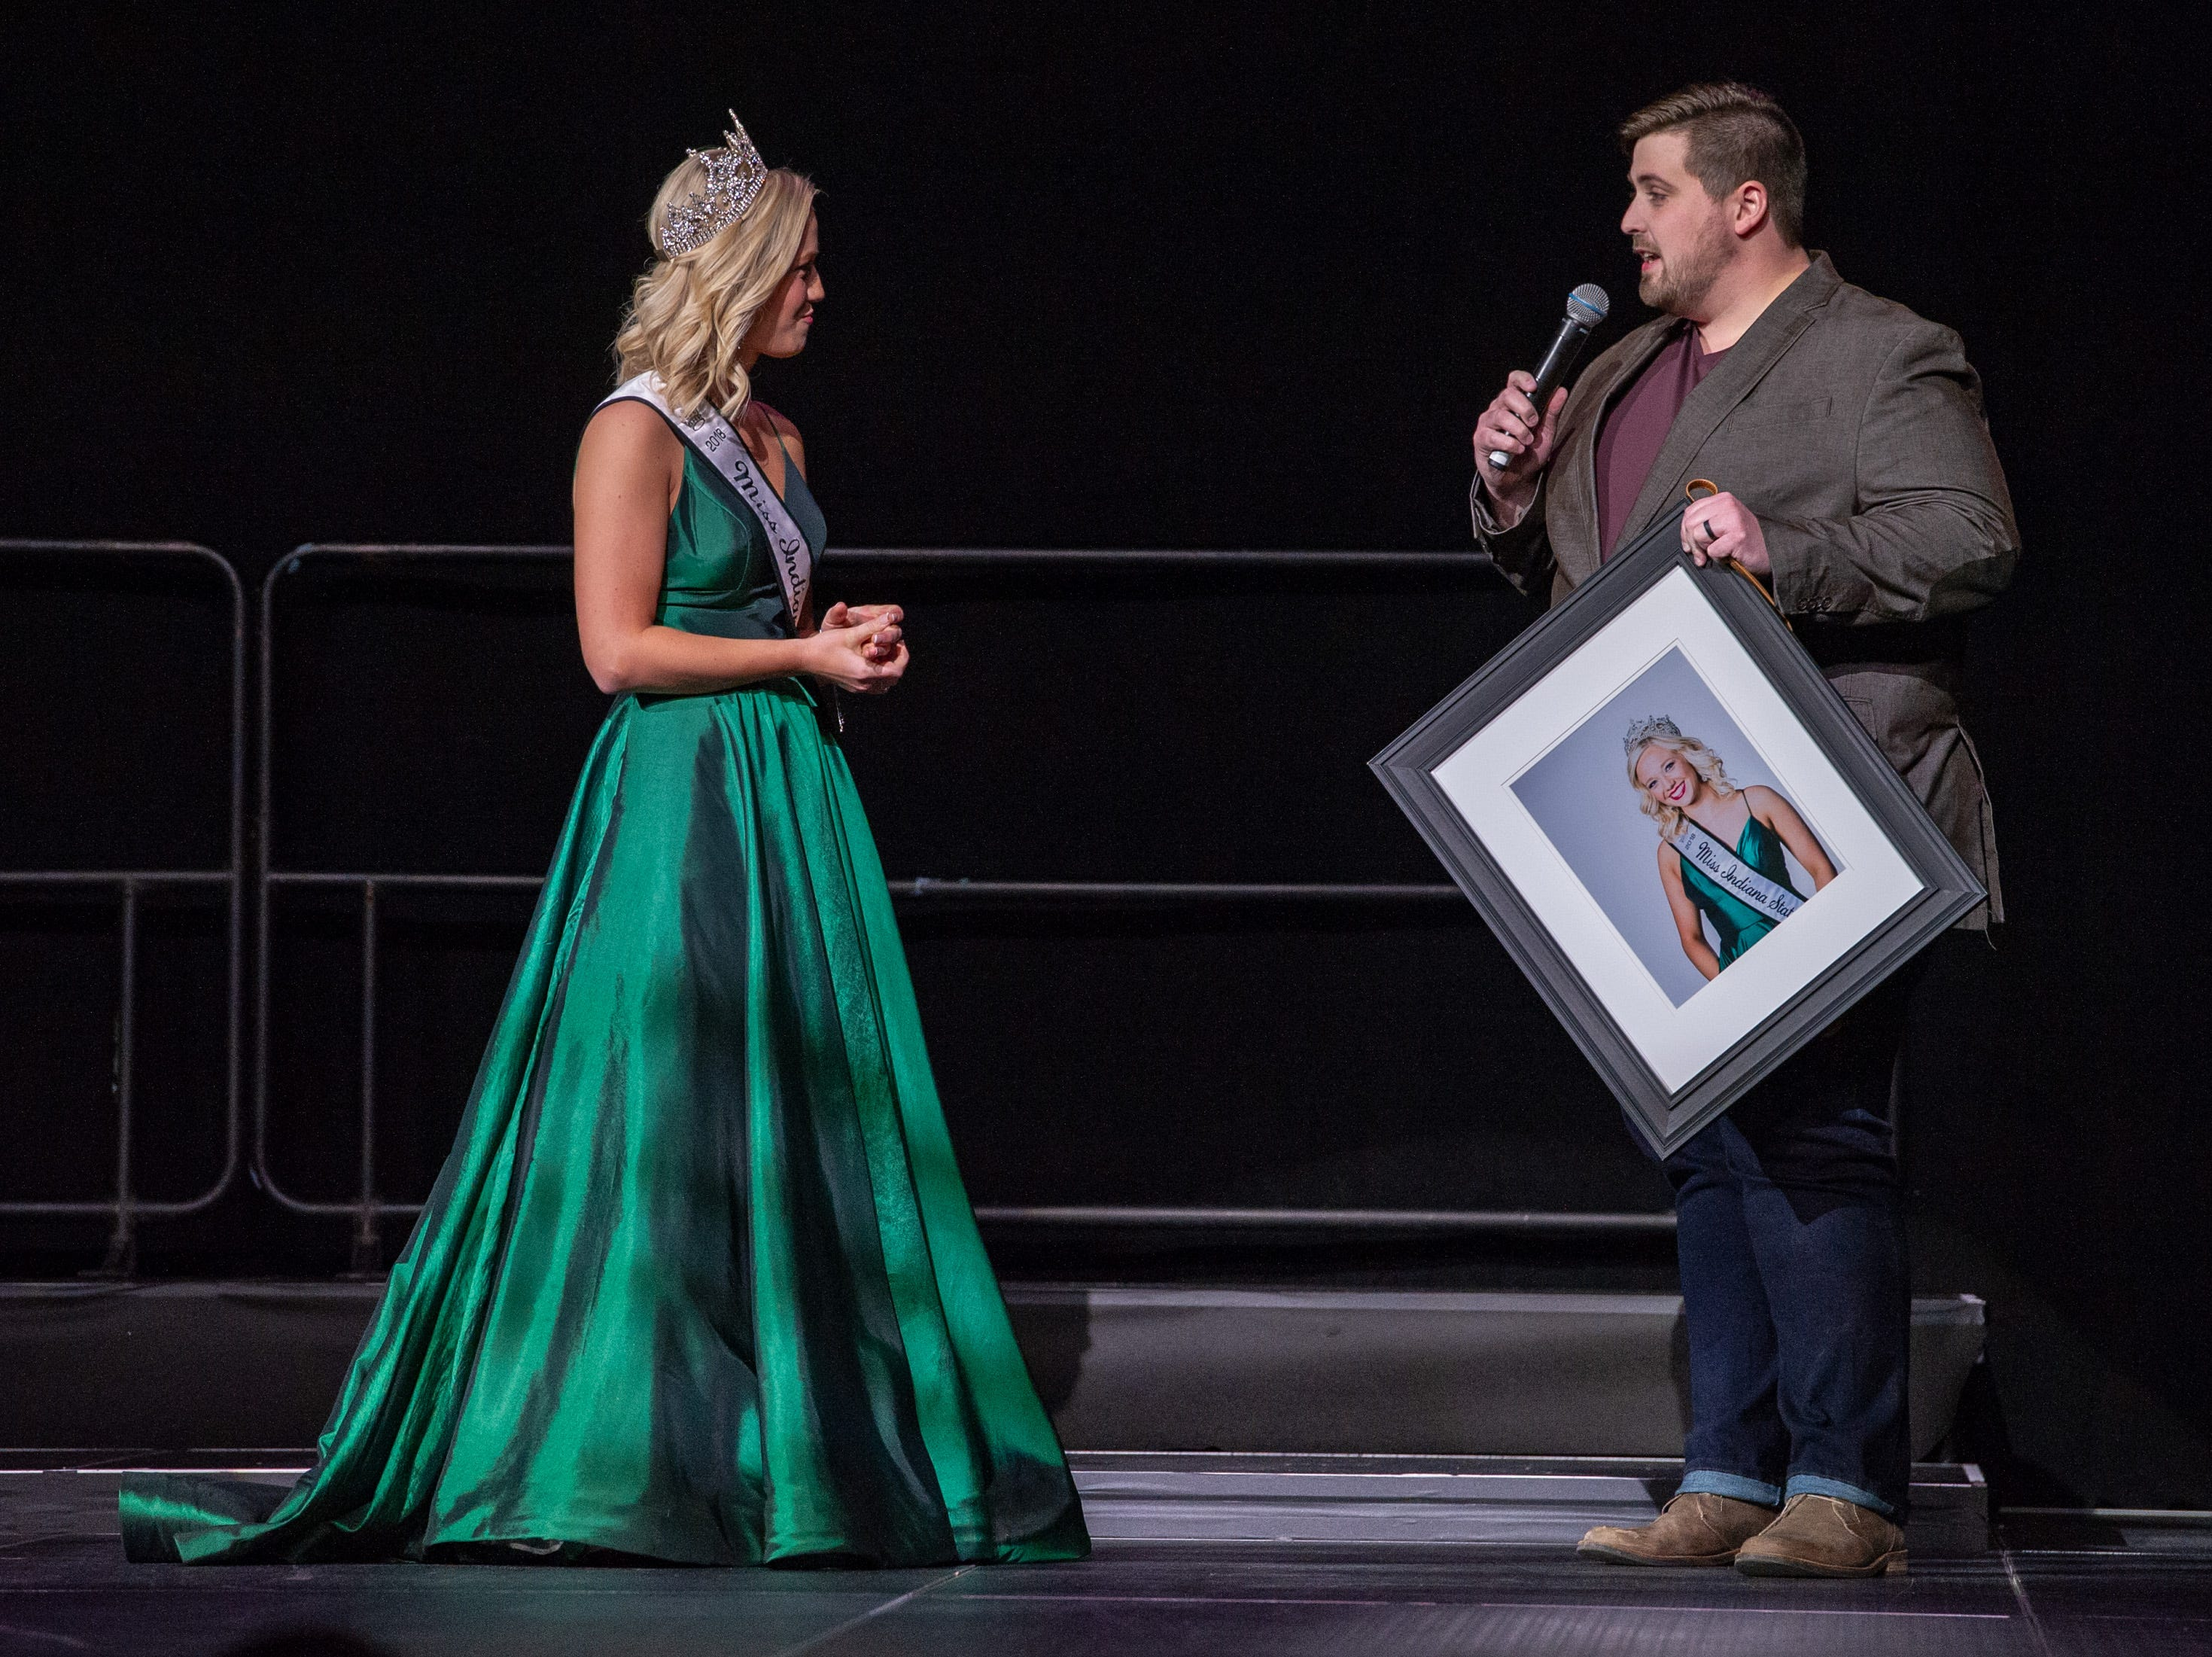 Miss Indiana State Fair 2018, Audrey Campbell, was presented with a portrait of herself during the 61st Indiana State Fair Queen Pageant at the Indiana State Fairgrounds in Indianapolis on Sunday, Jan. 6, 2019.